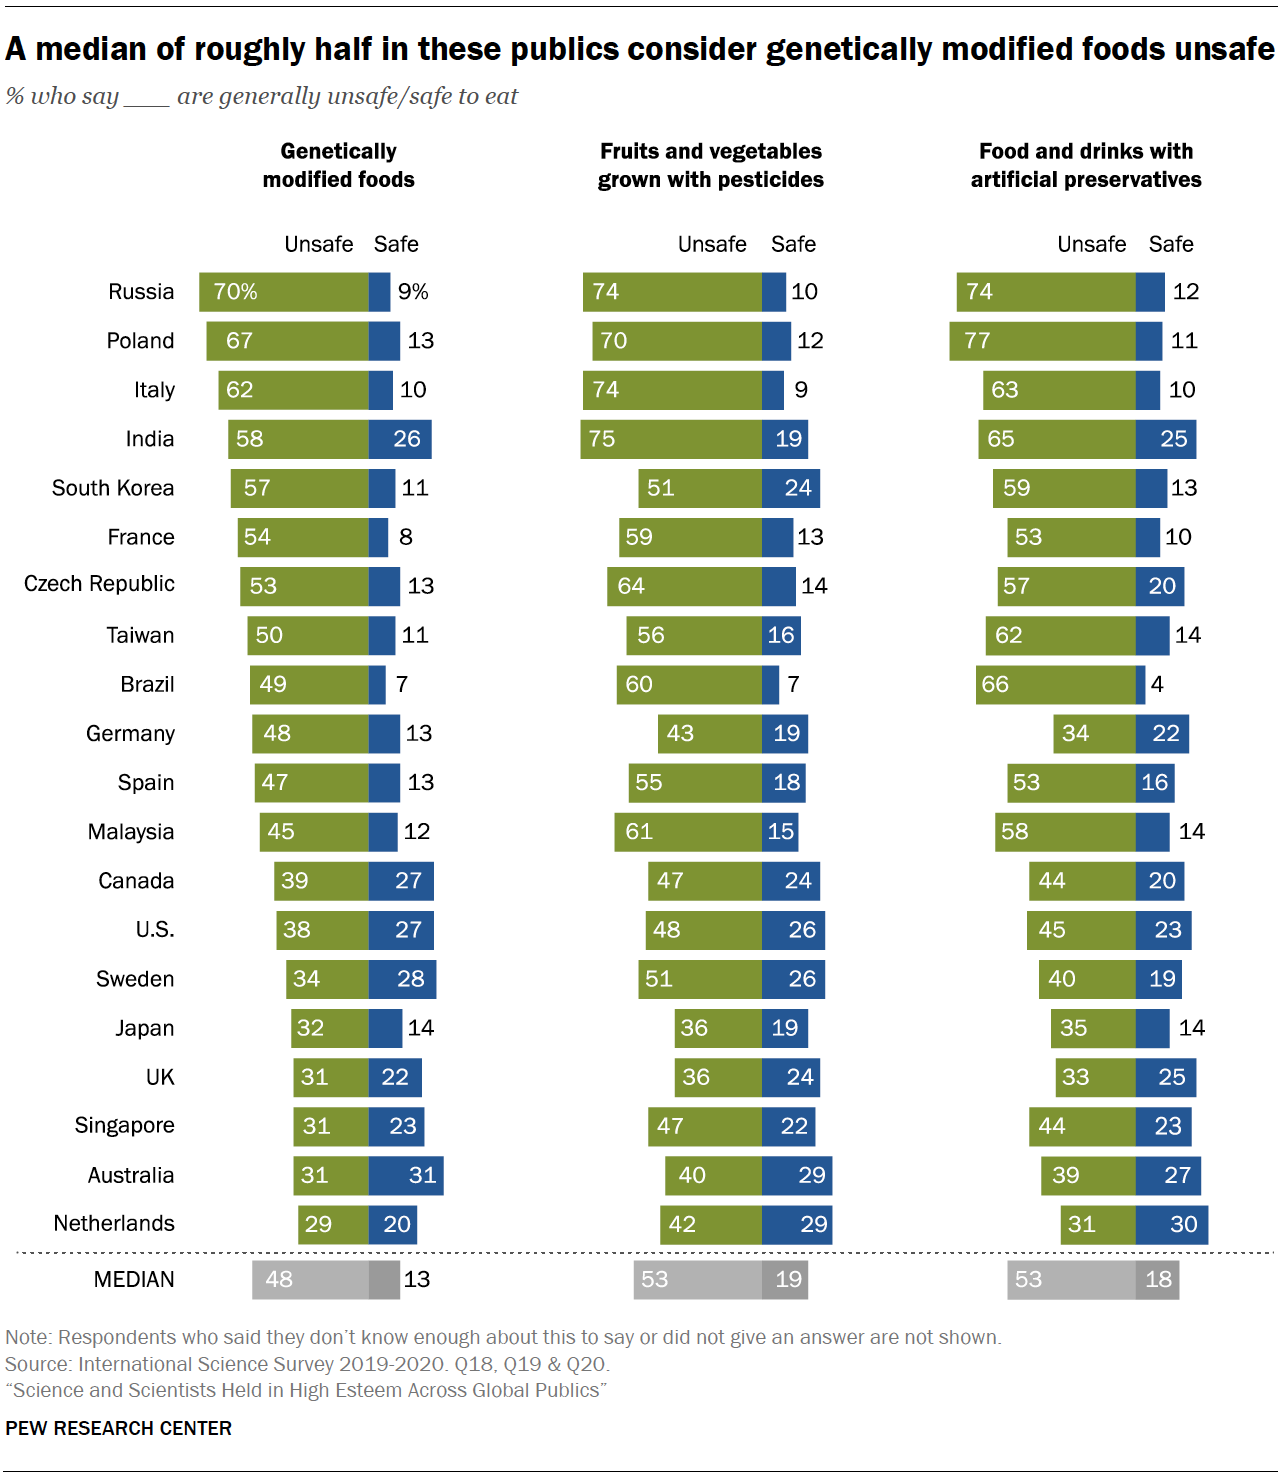 Chart shows a median of roughly half in these publics consider genetically modified foods unsafe